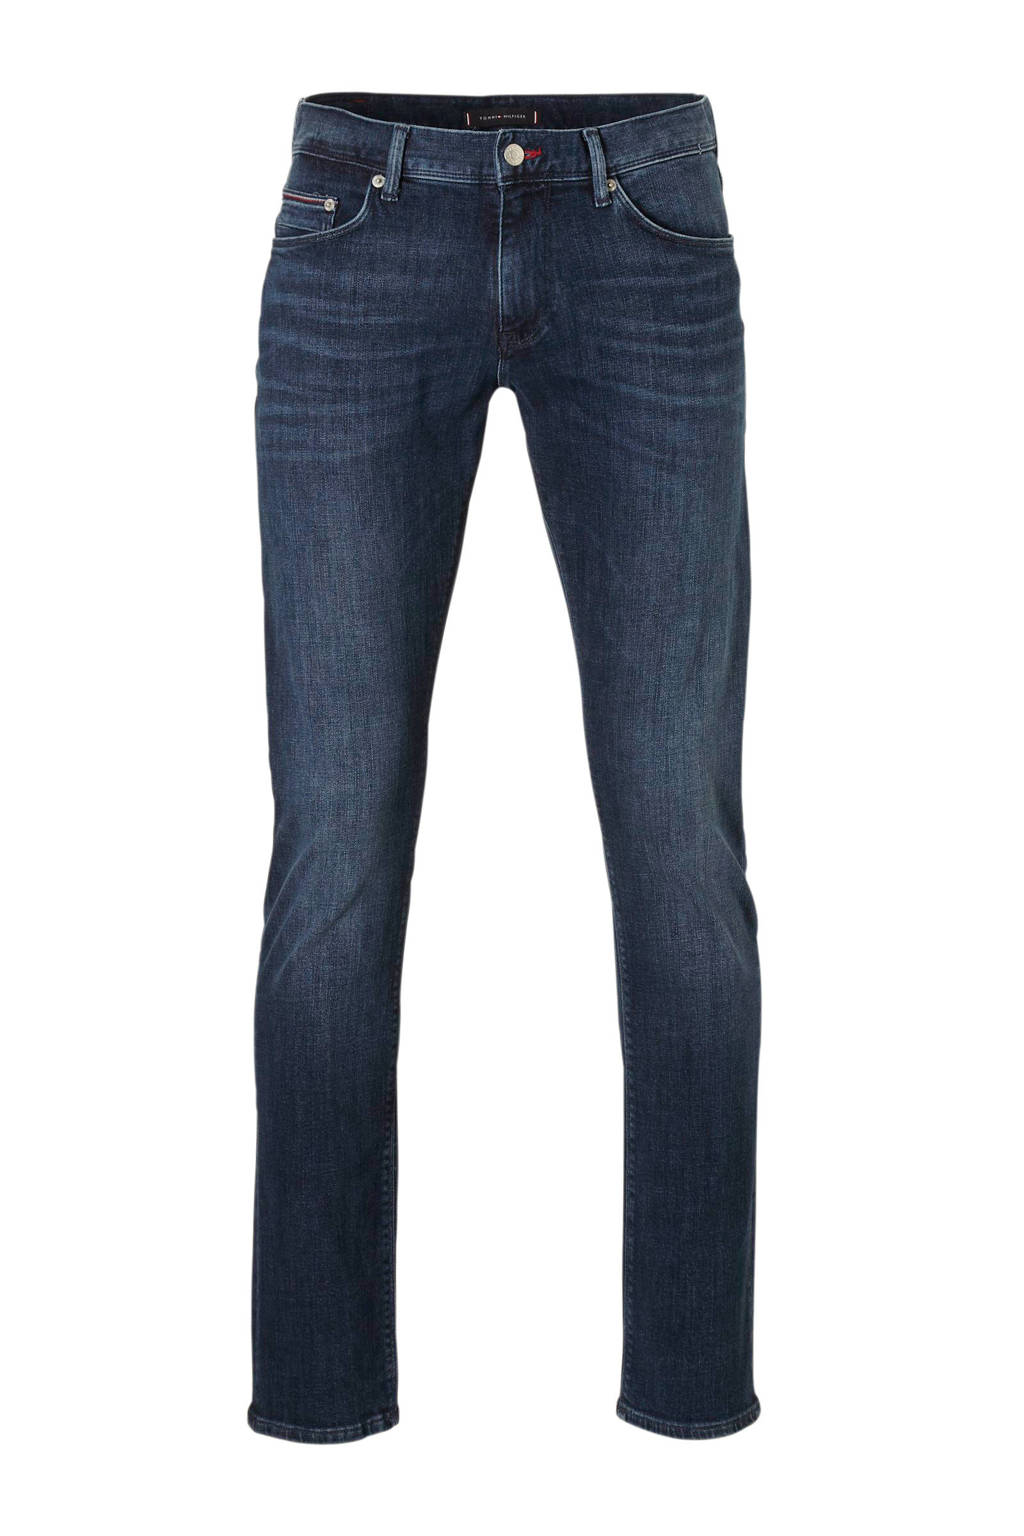 Tommy Hilfiger slim fit jeans Bleecker, Dark denim